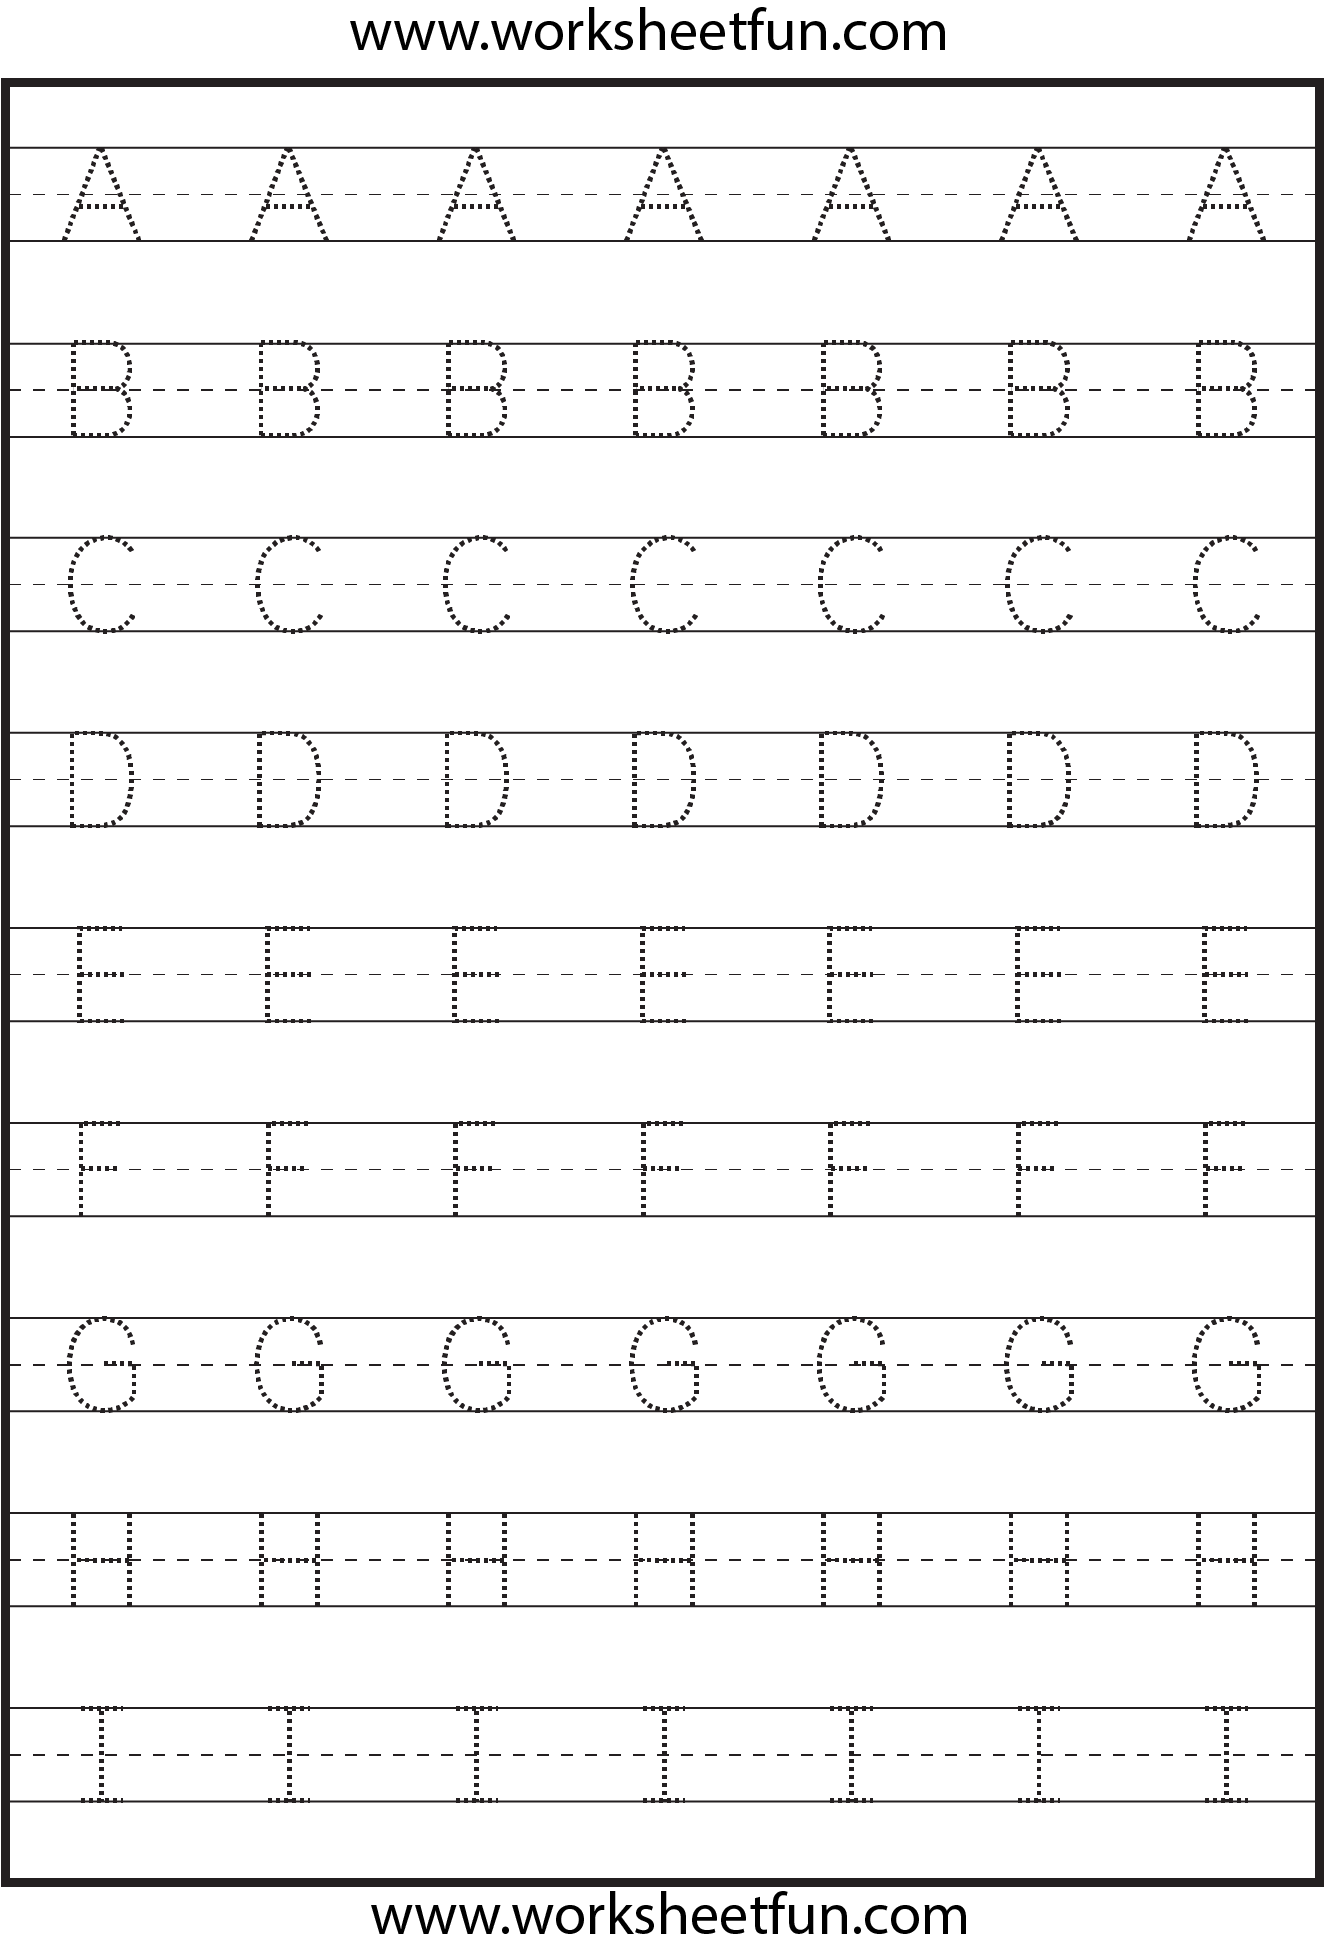 Printables Traceable Alphabet Worksheet traceable alphabet worksheets a z davezan trace davezan